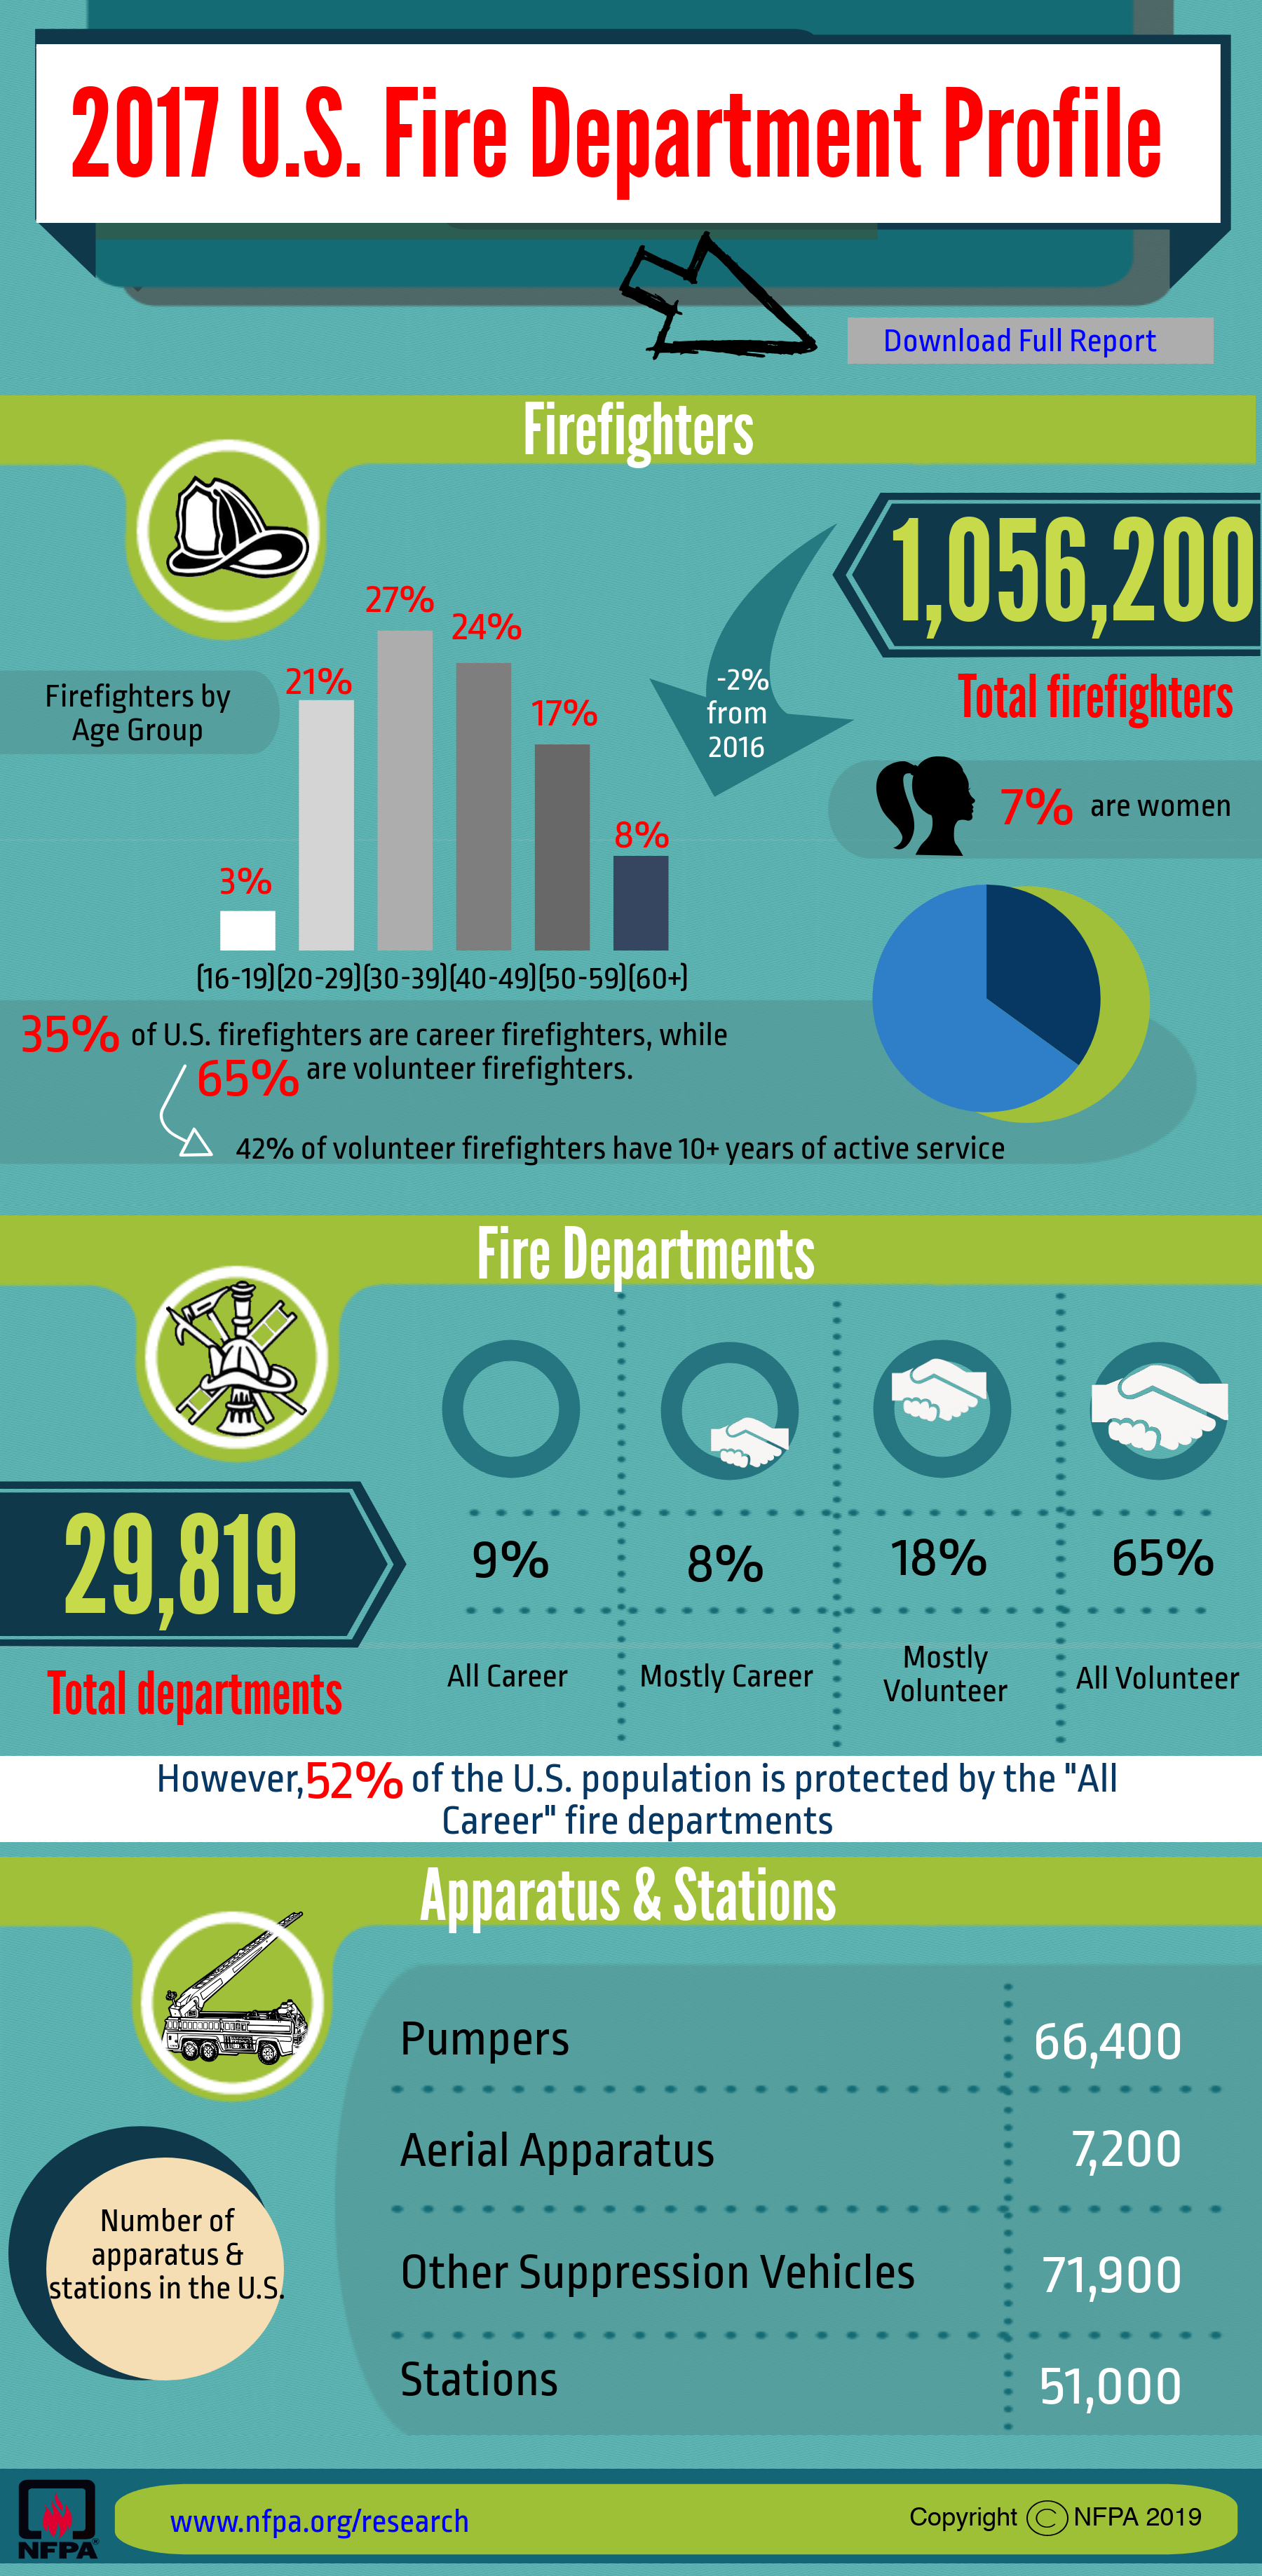 2017 Fire Department Profile infographic